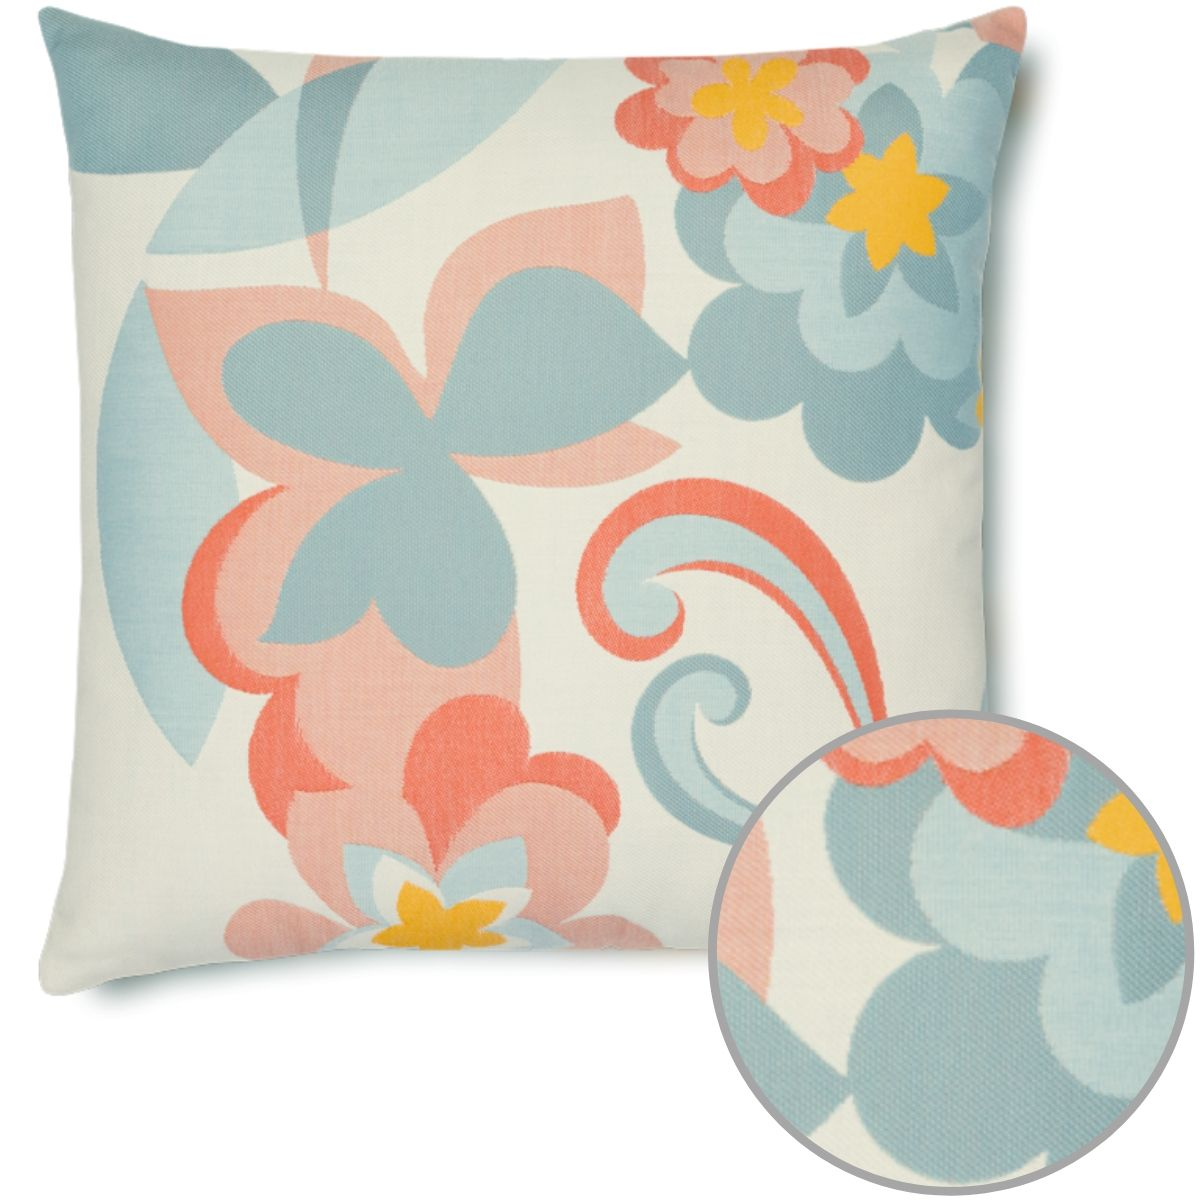 floral-pop outdoor sunbrella pillow detail